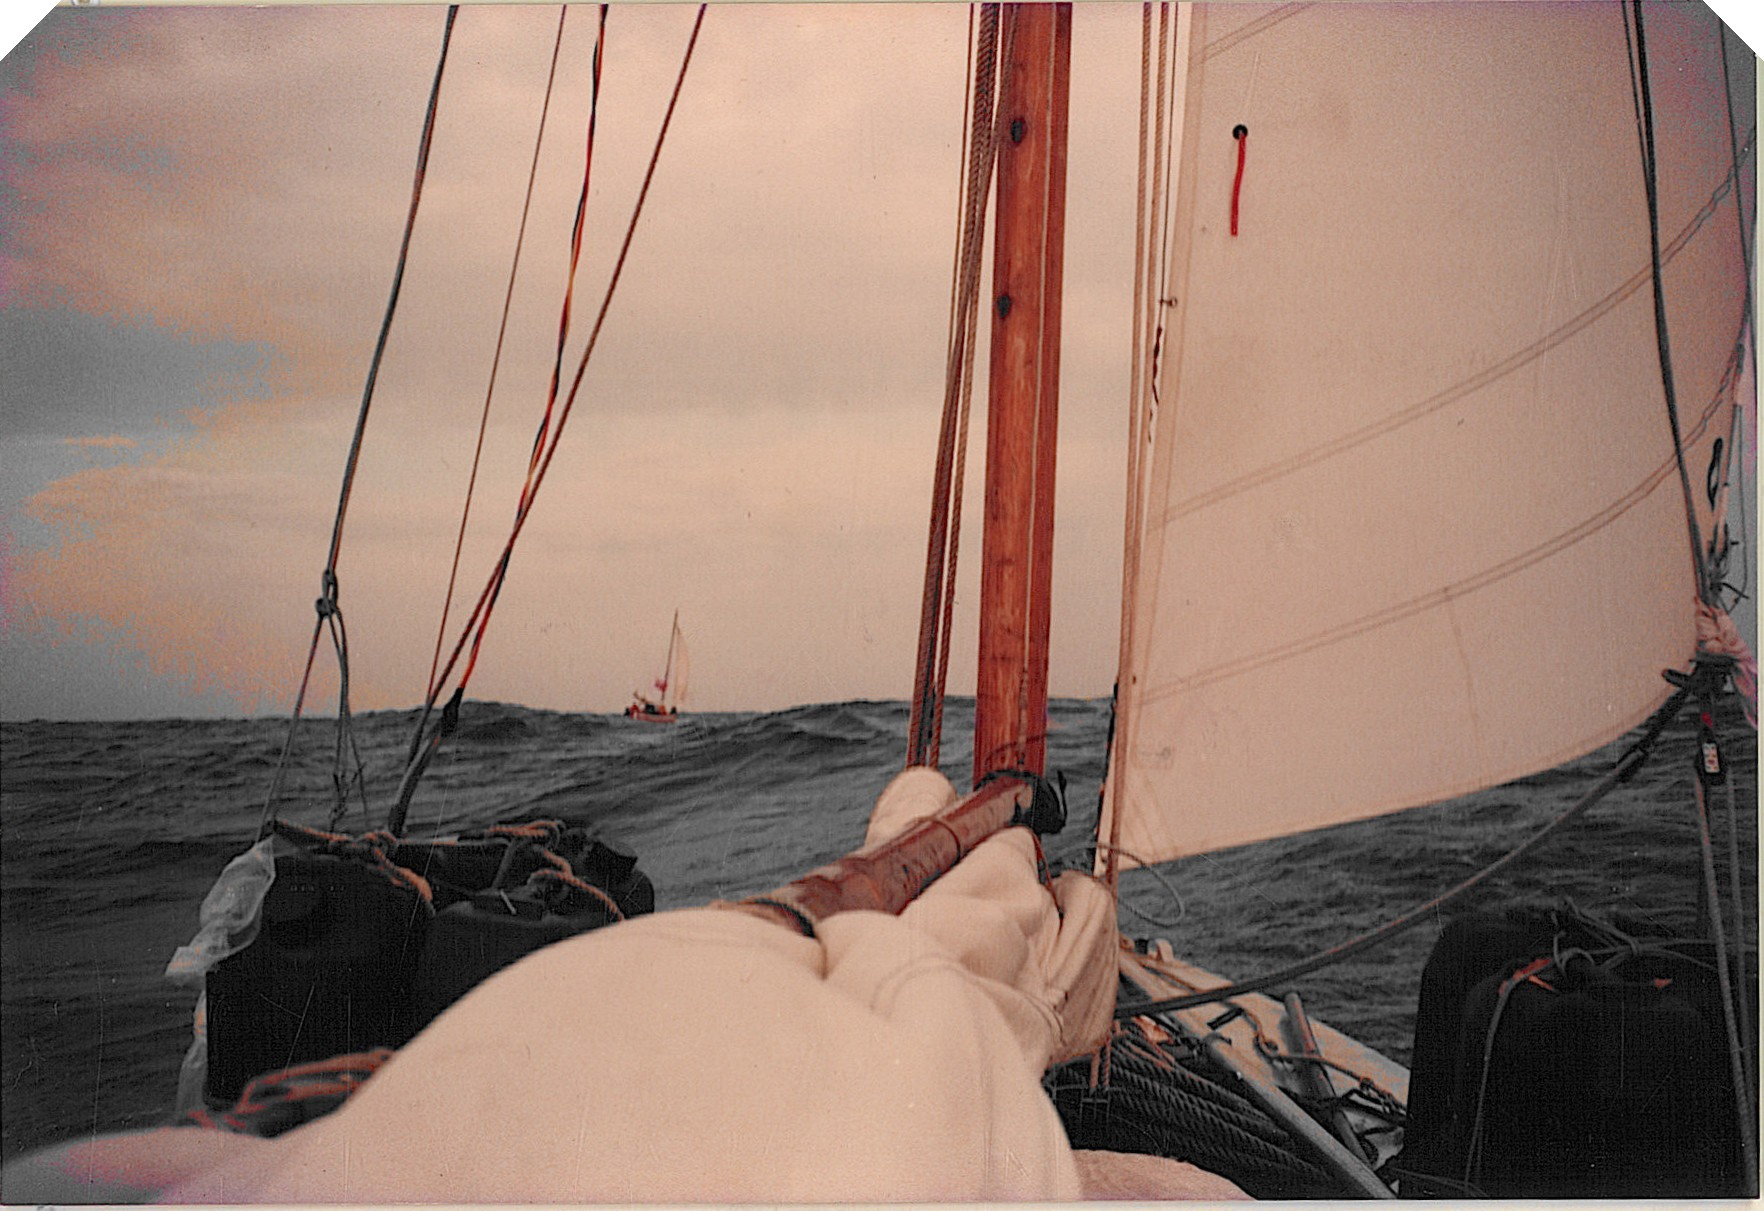 Bombay Muscat Voyage Seabird Sailboat (10)